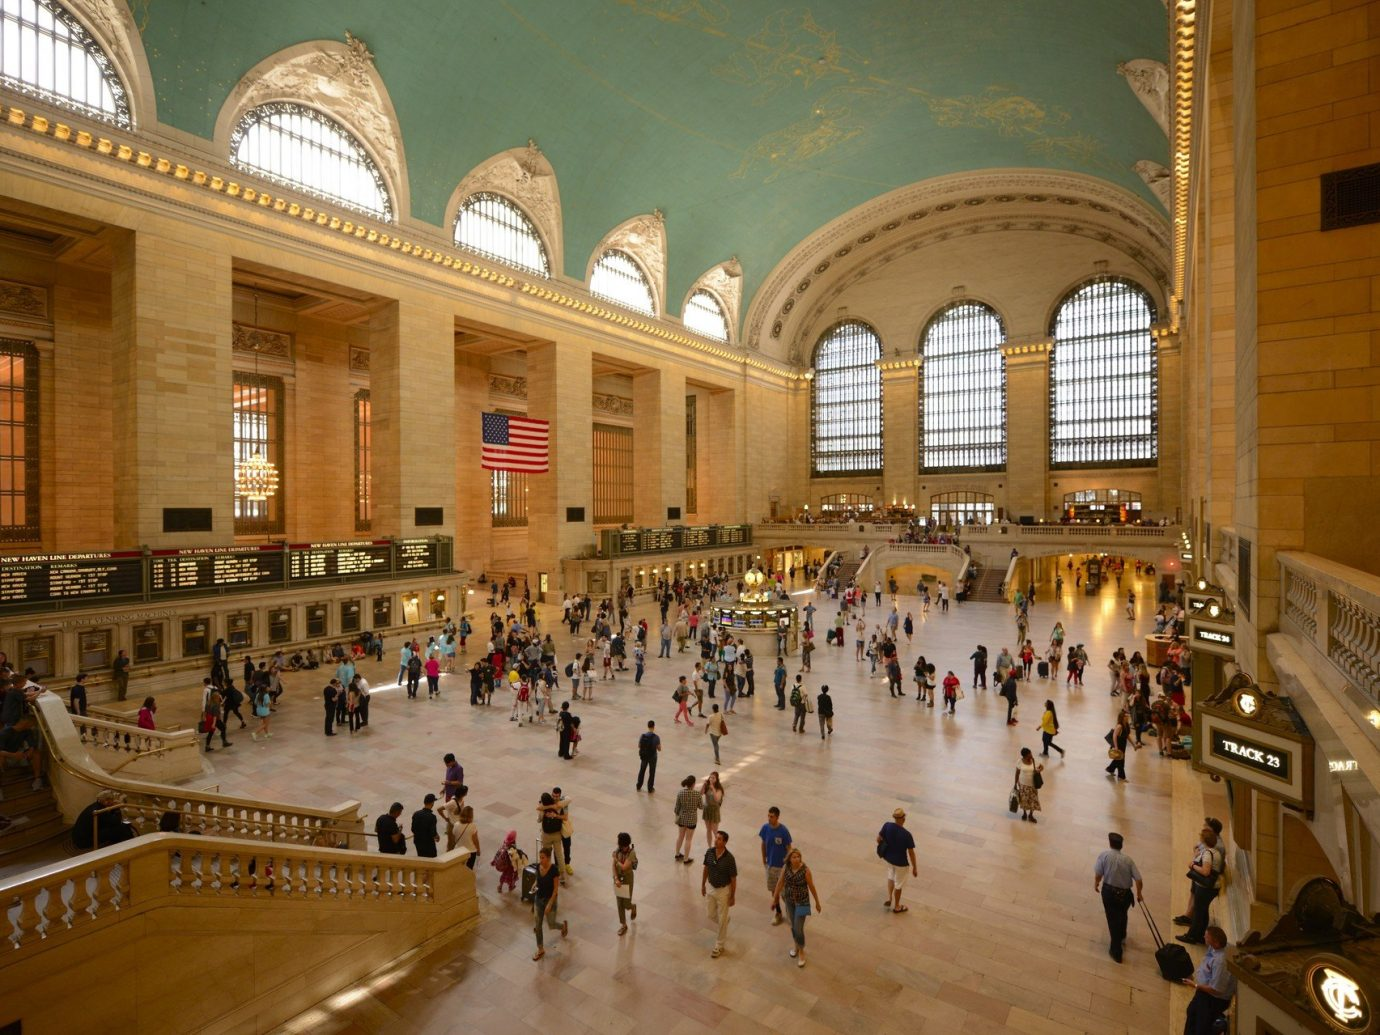 Budget building shopping mall plaza people tourist attraction ancient history retail palace hall colonnade several